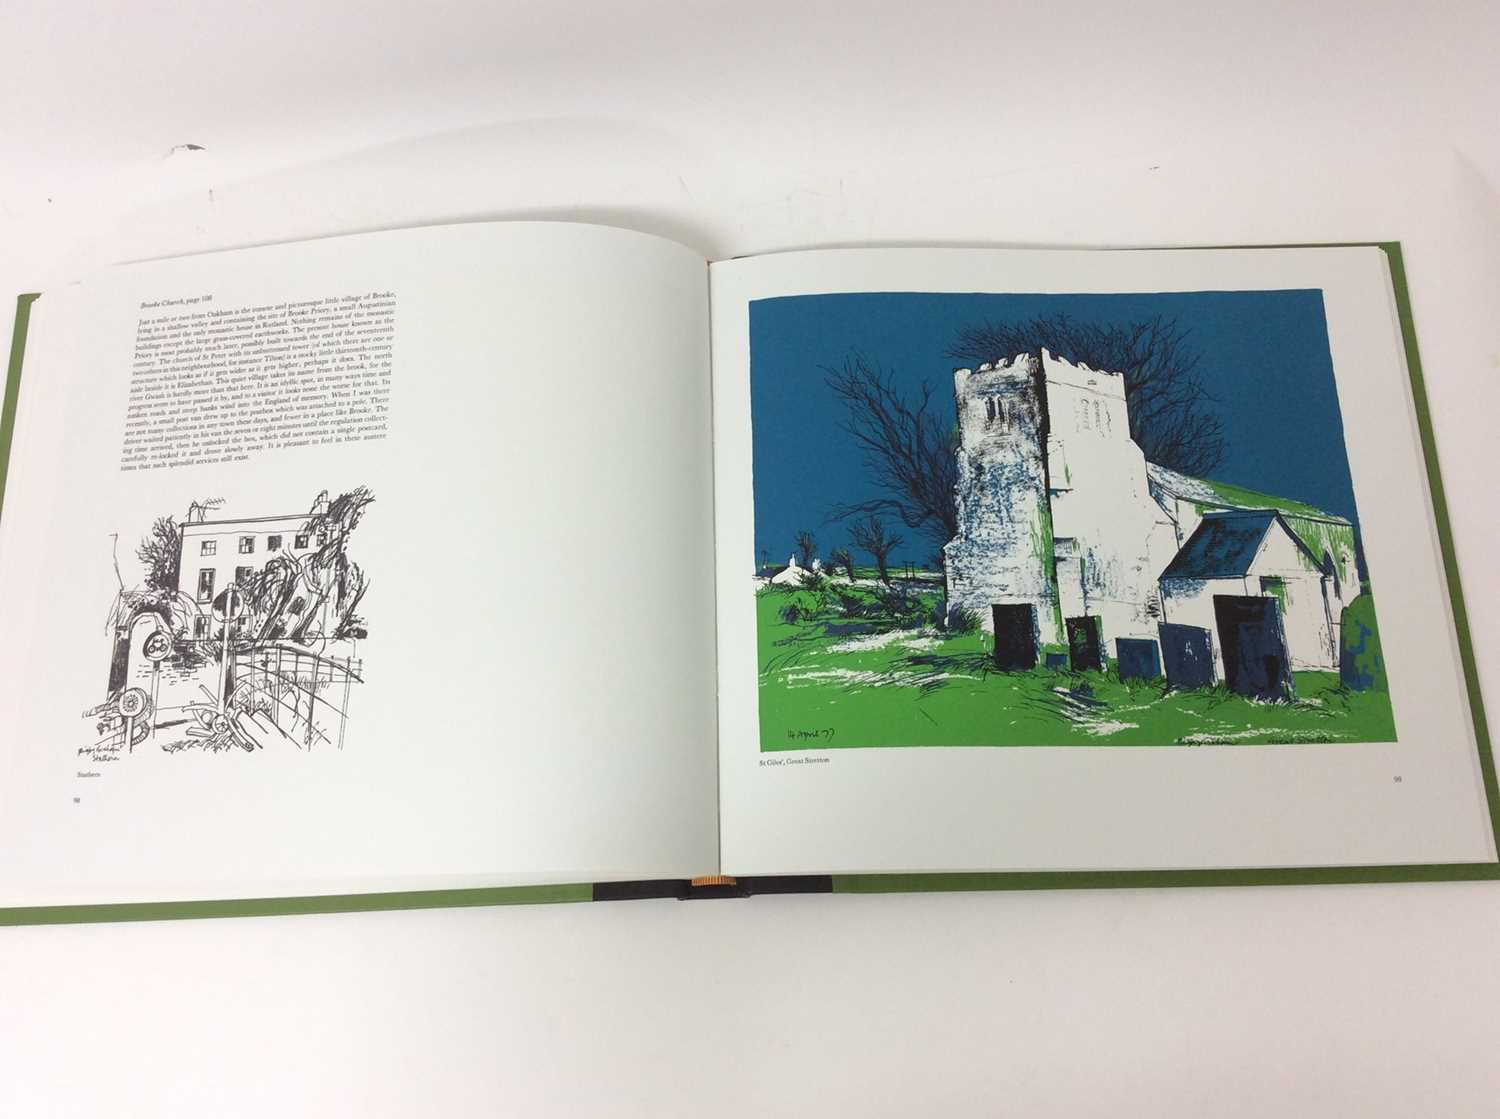 Rigby Graham, Leicestershire, Sycamore Press / Gadsby Gallery, Leicester 1980, folio book in slip co - Image 8 of 10